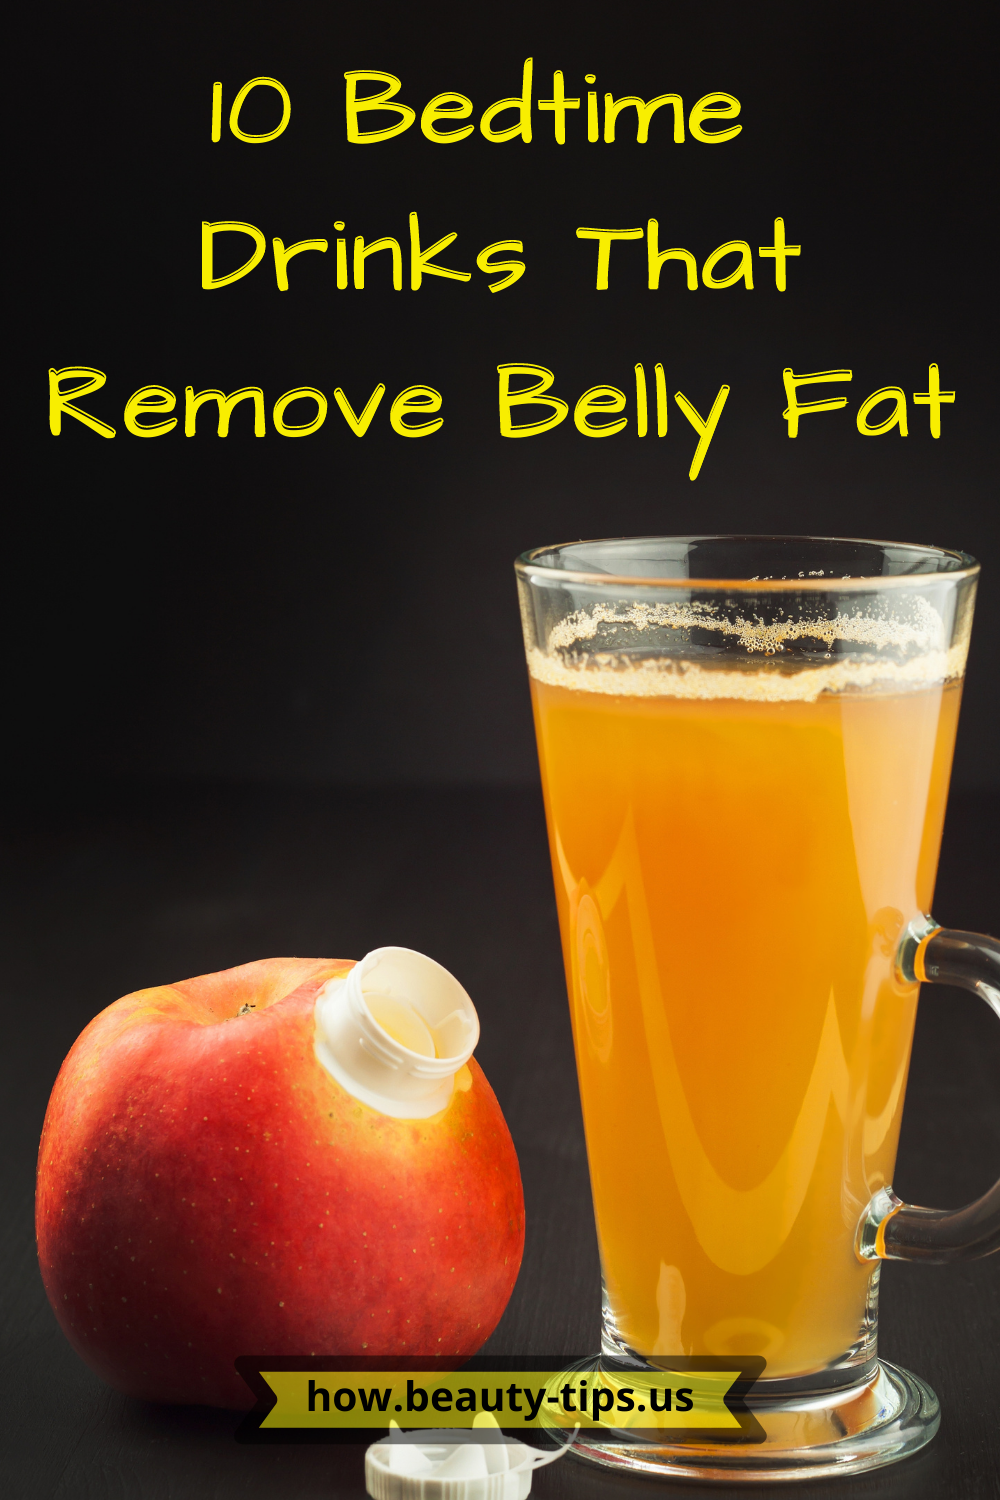 Bedtime Drinks That Remove Belly Fat